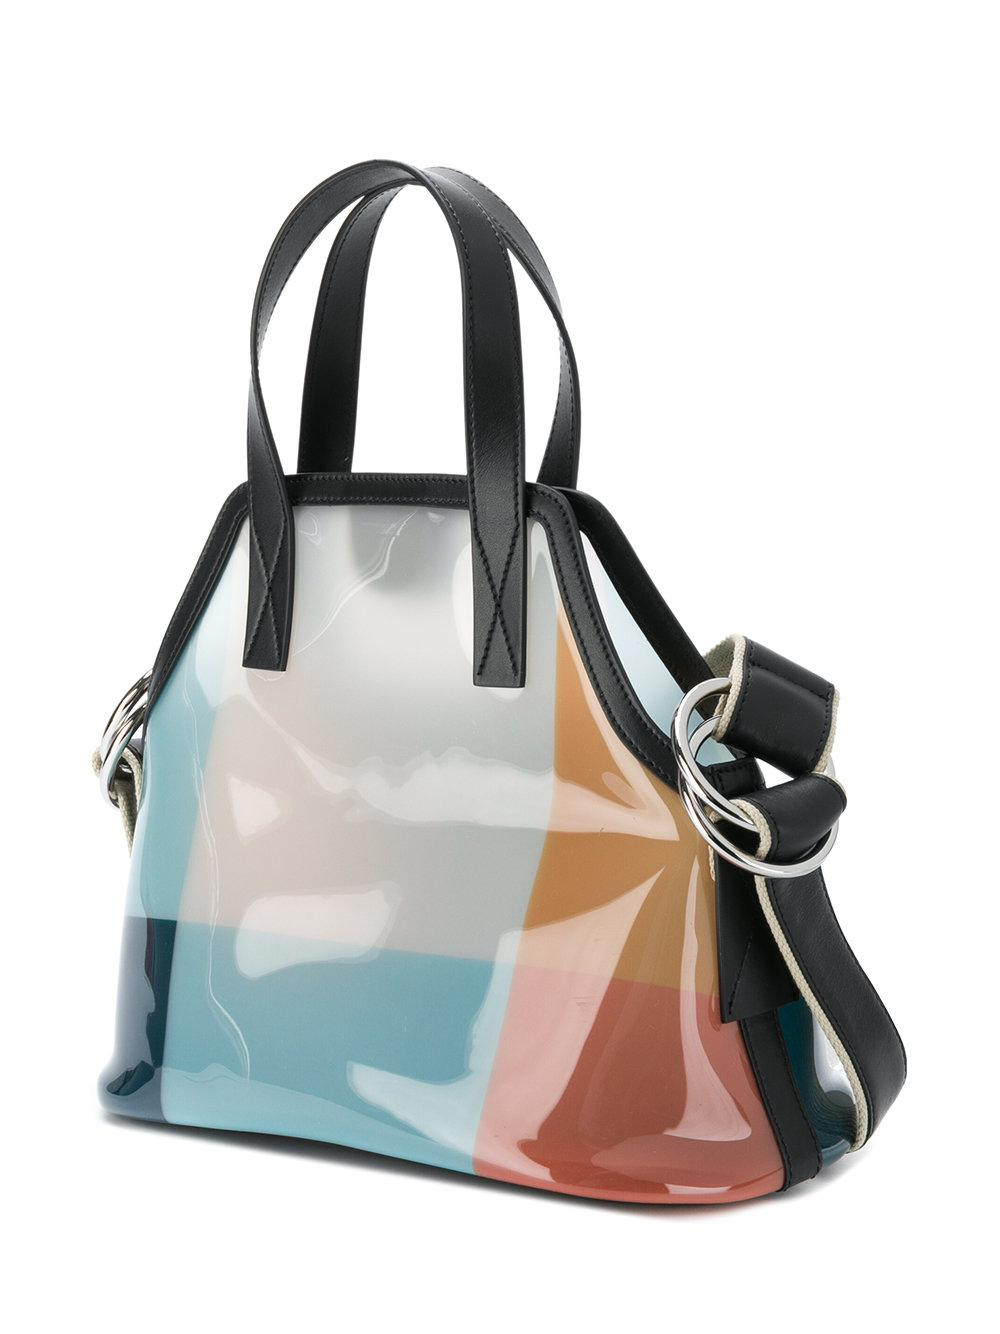 Marni Leather Clear Structured Tote Bag